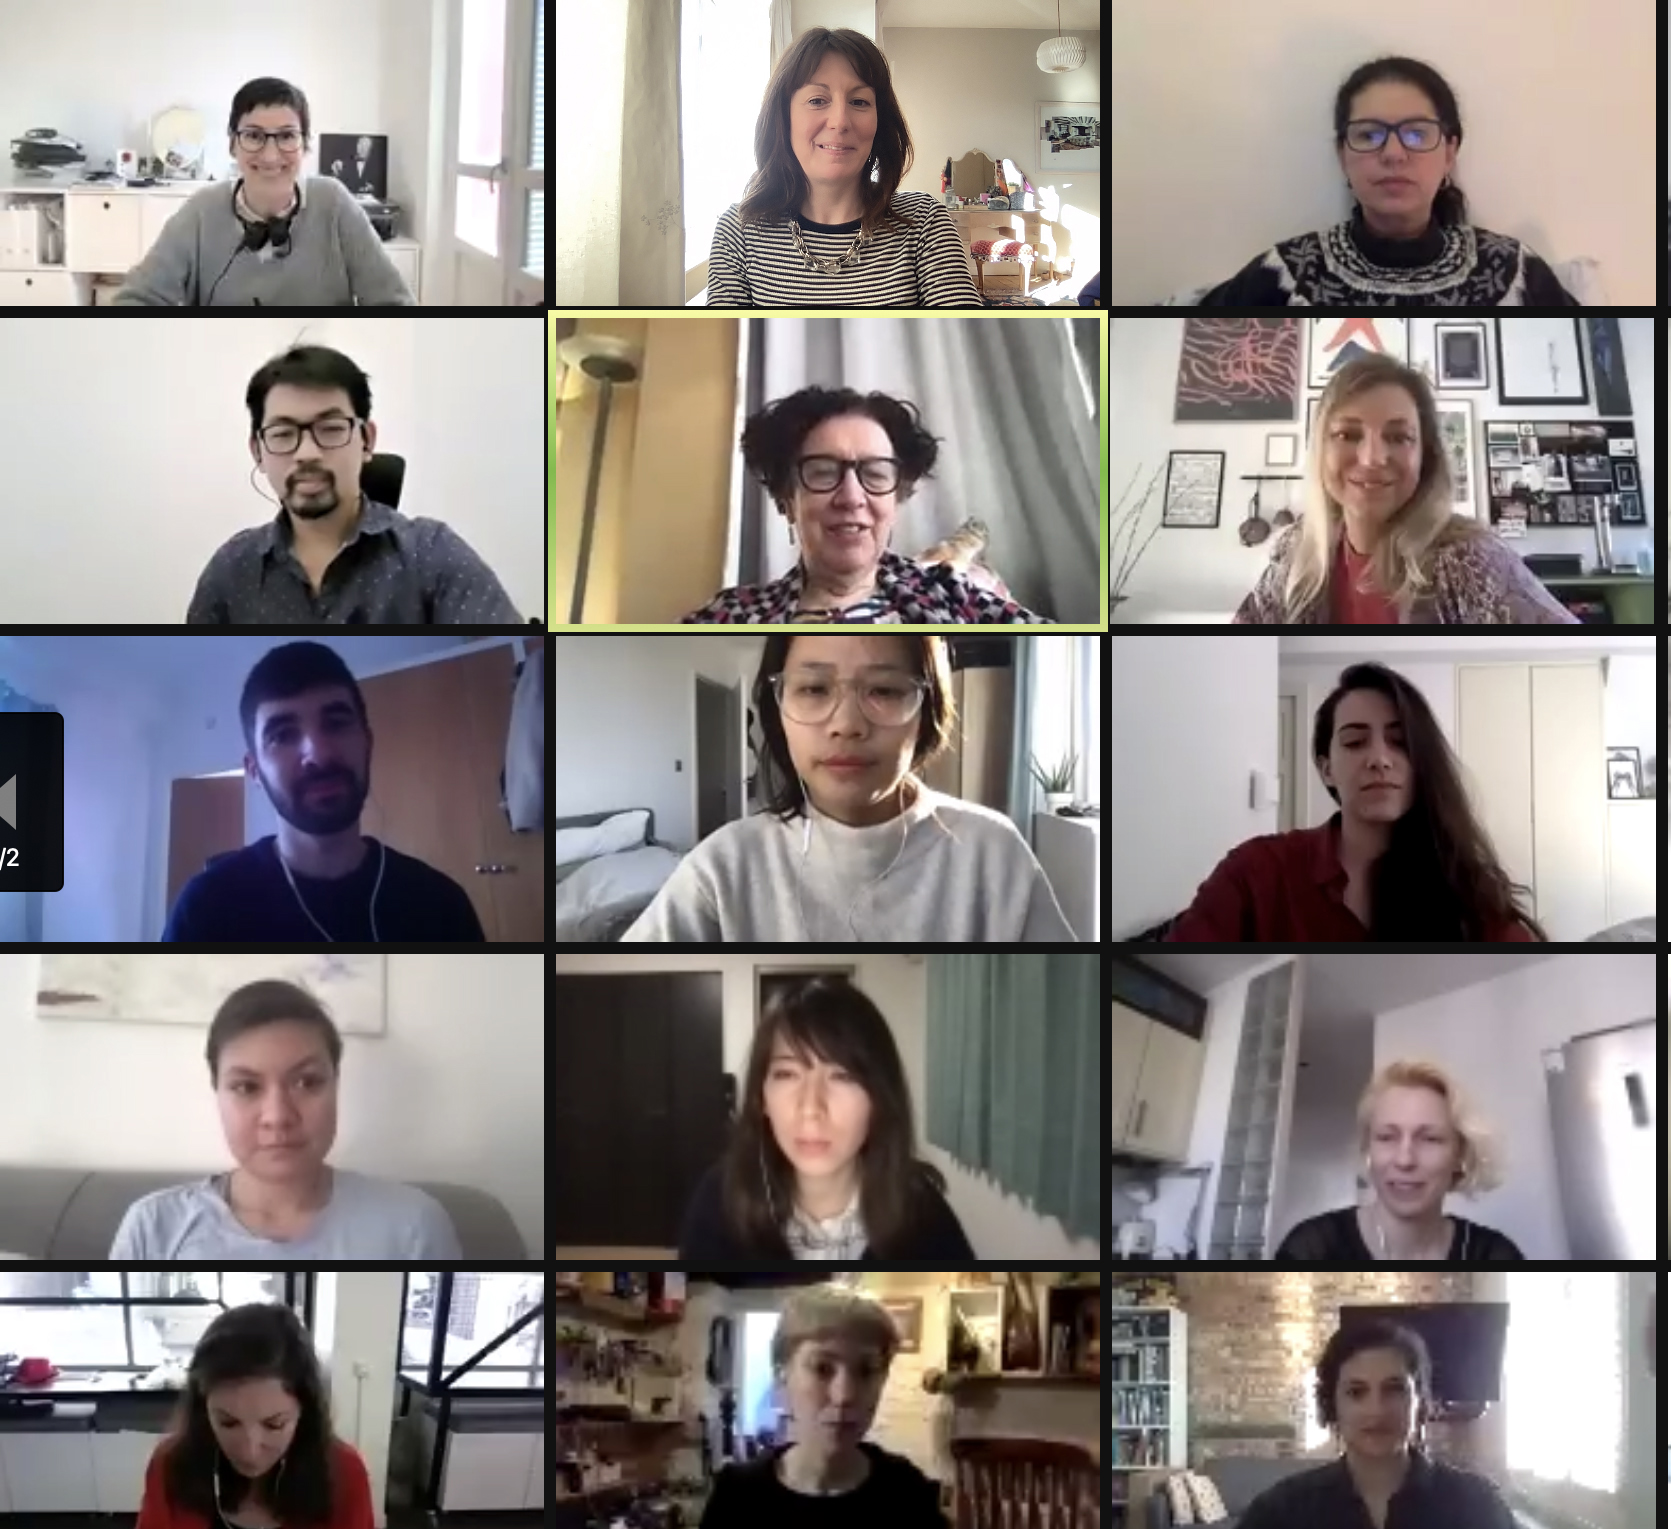 screenshot from a zoom call with 15 participants faces.